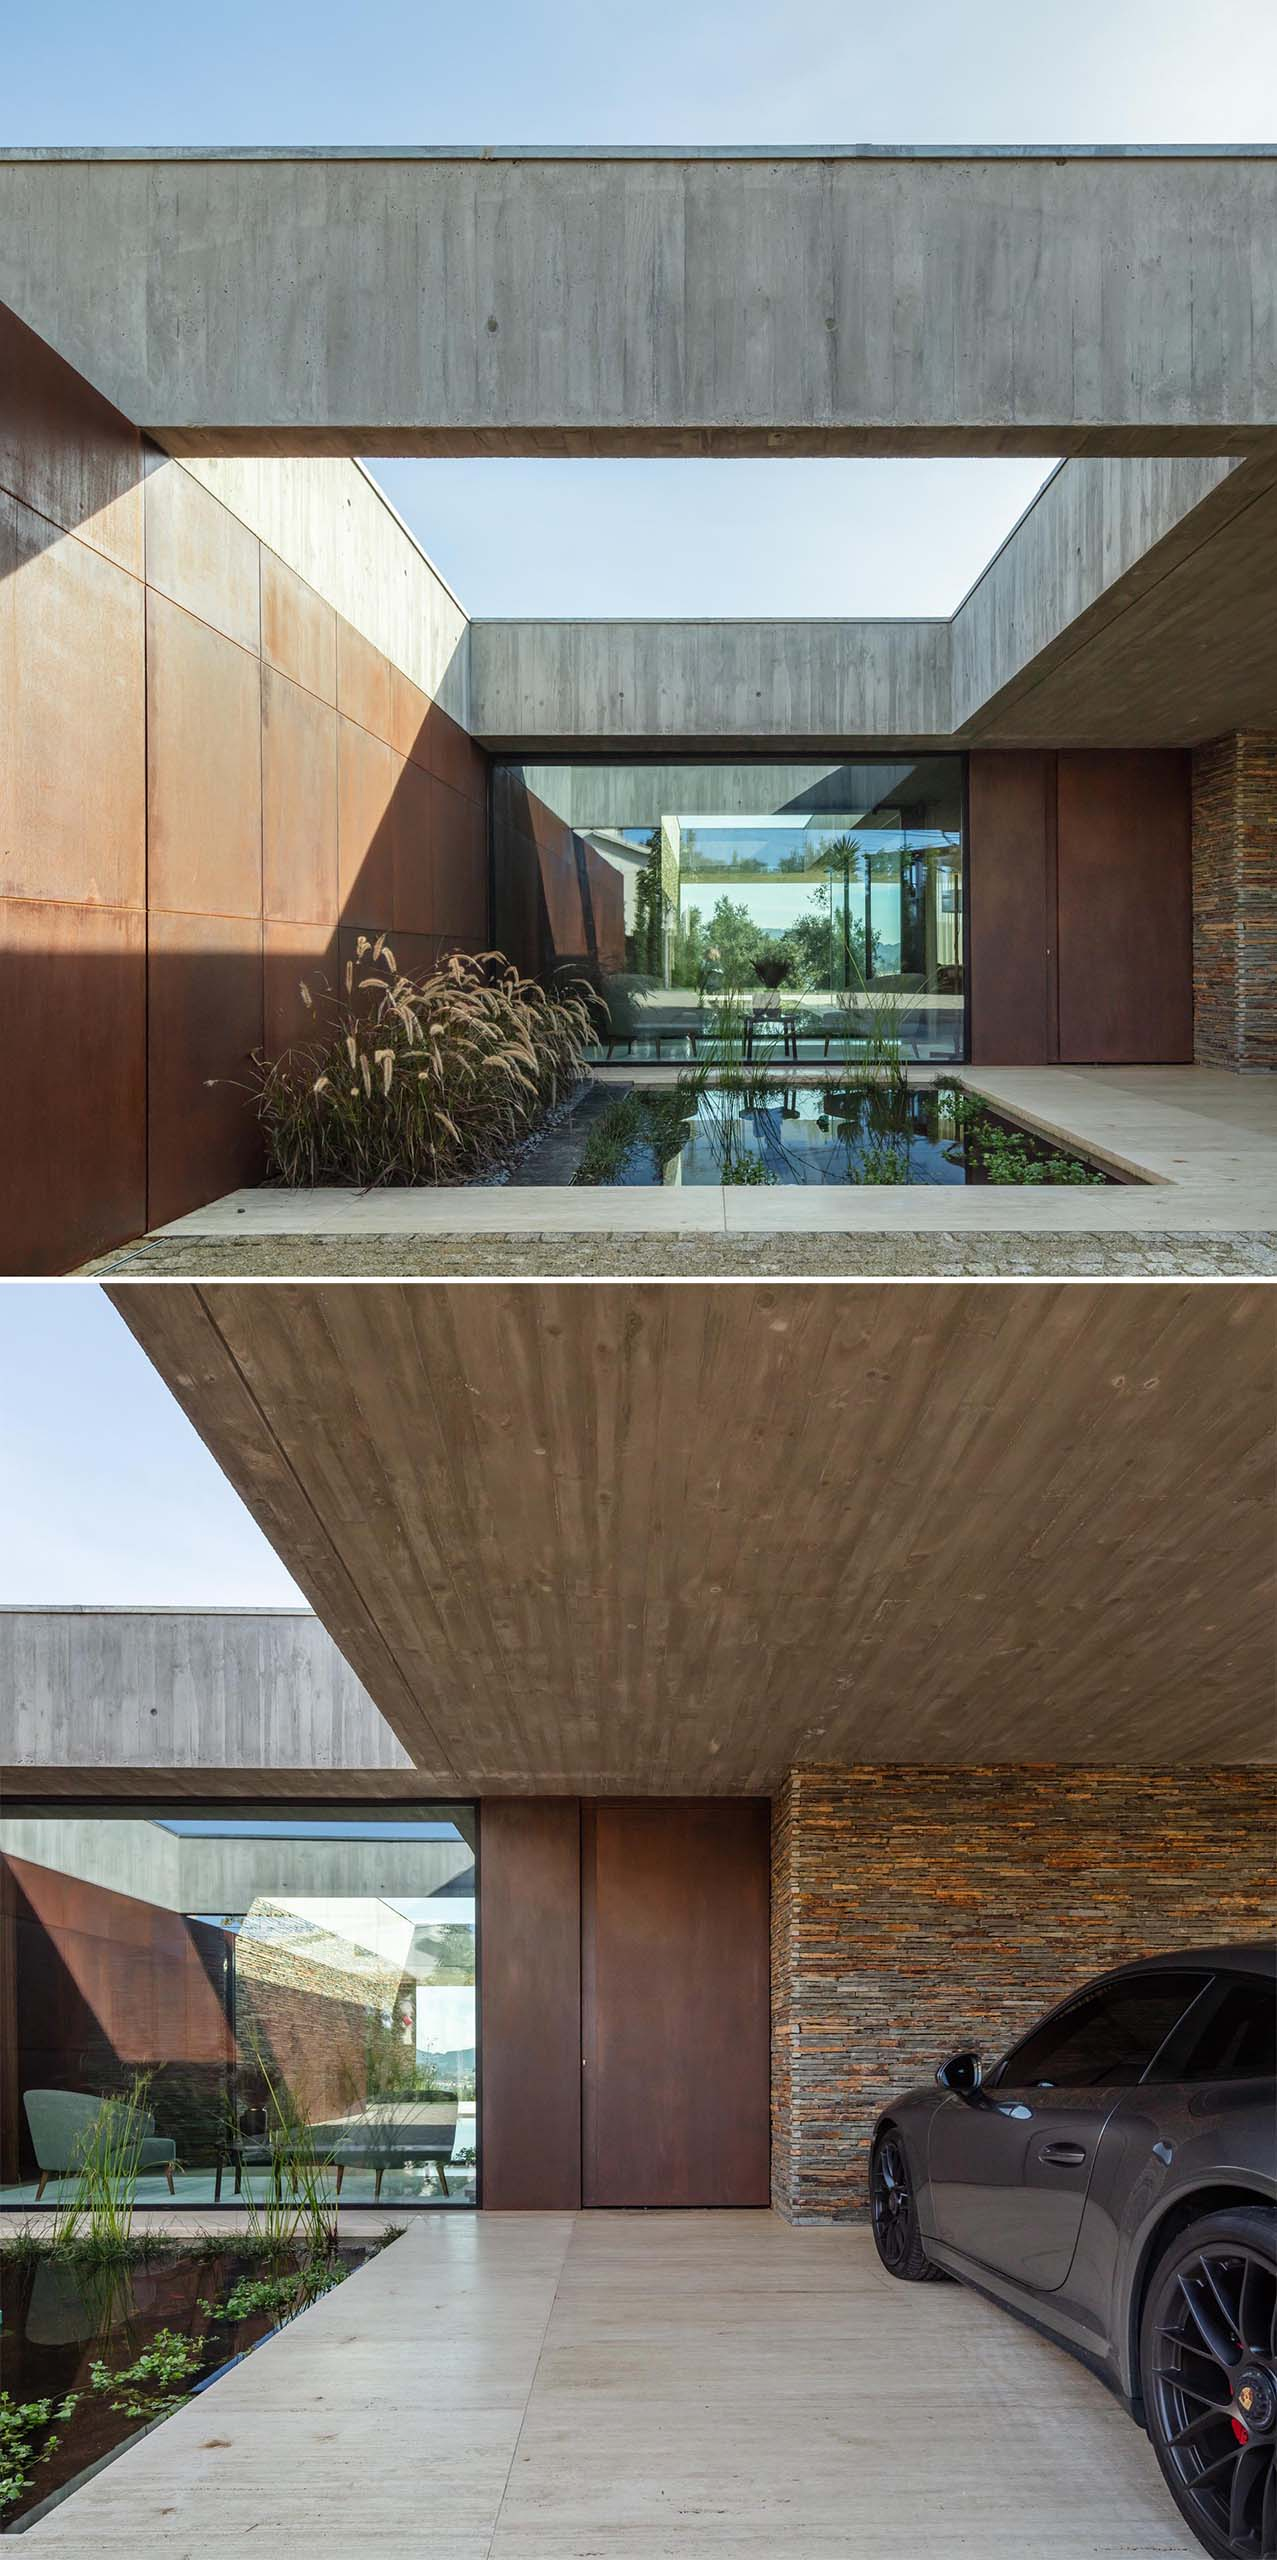 A modern concrete house with weathered steel and slate stone accent walls, and a water feature with plants.